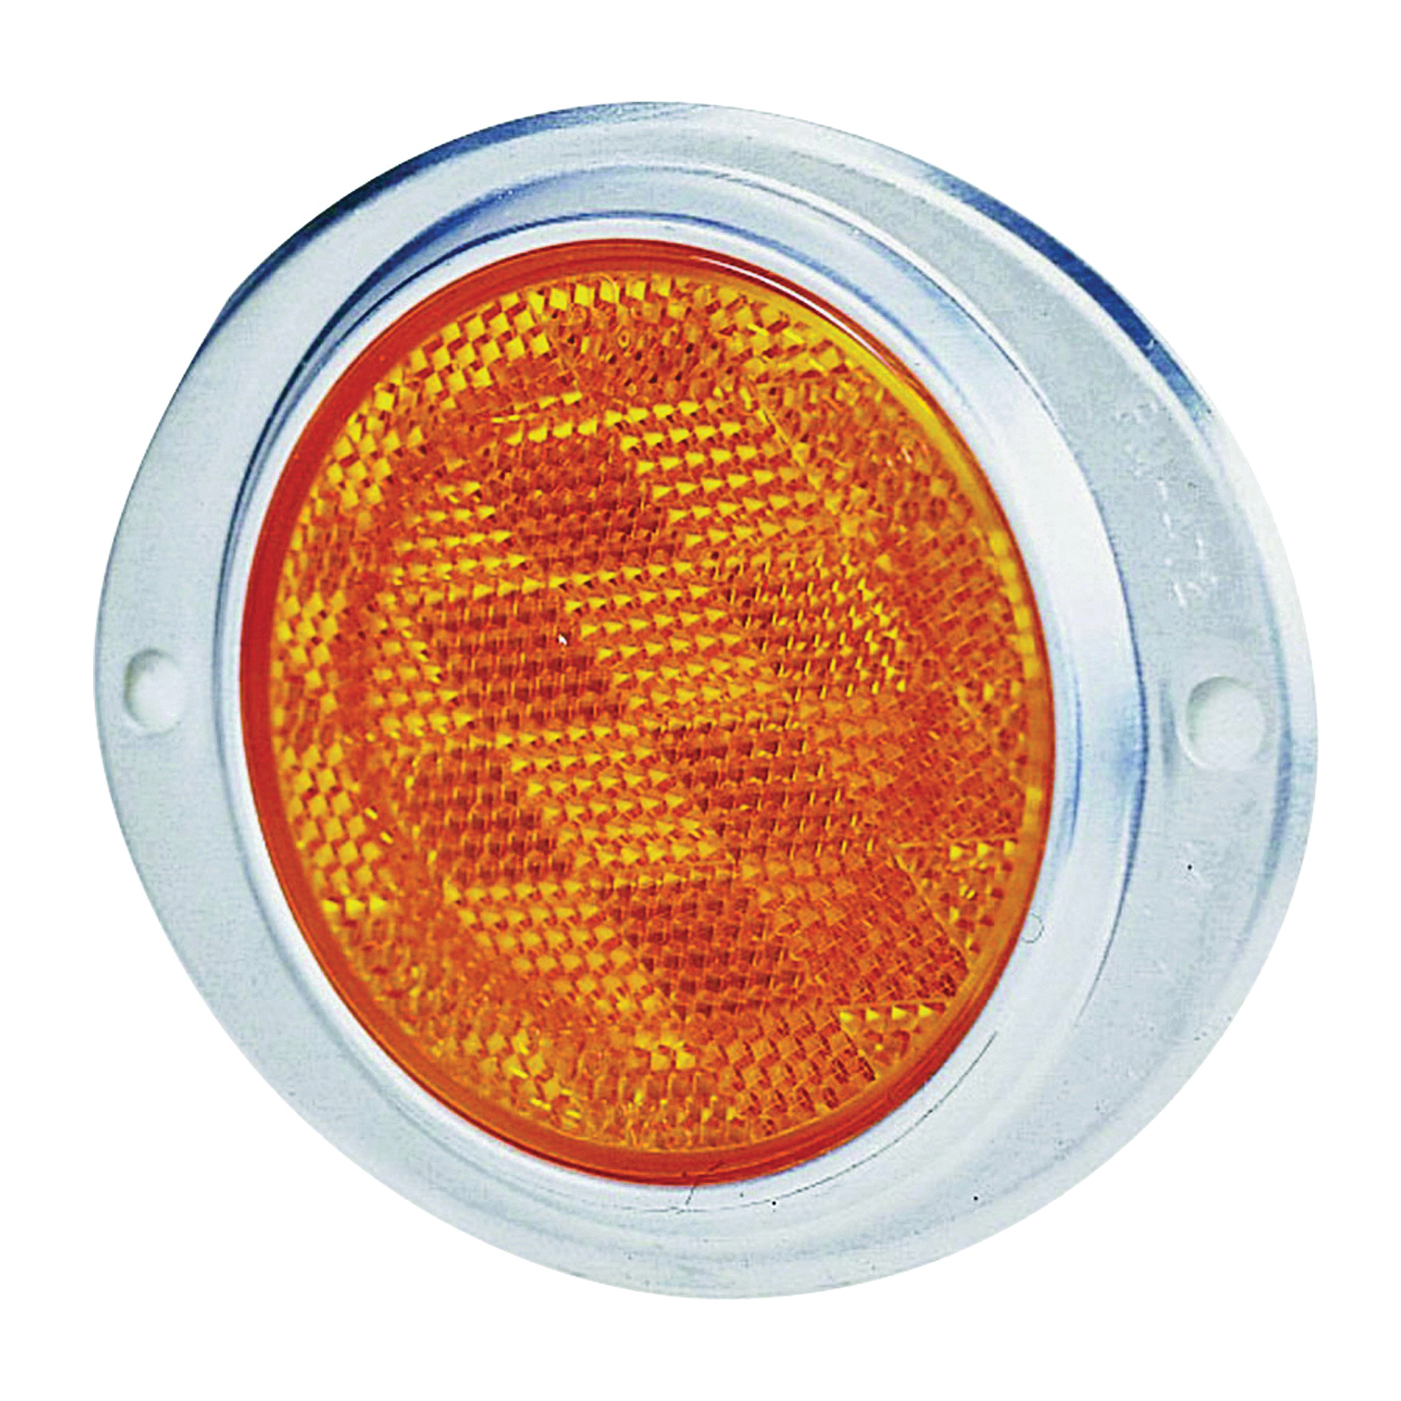 Picture of PM V472 Series V472A Oval Reflector, Amber Reflector